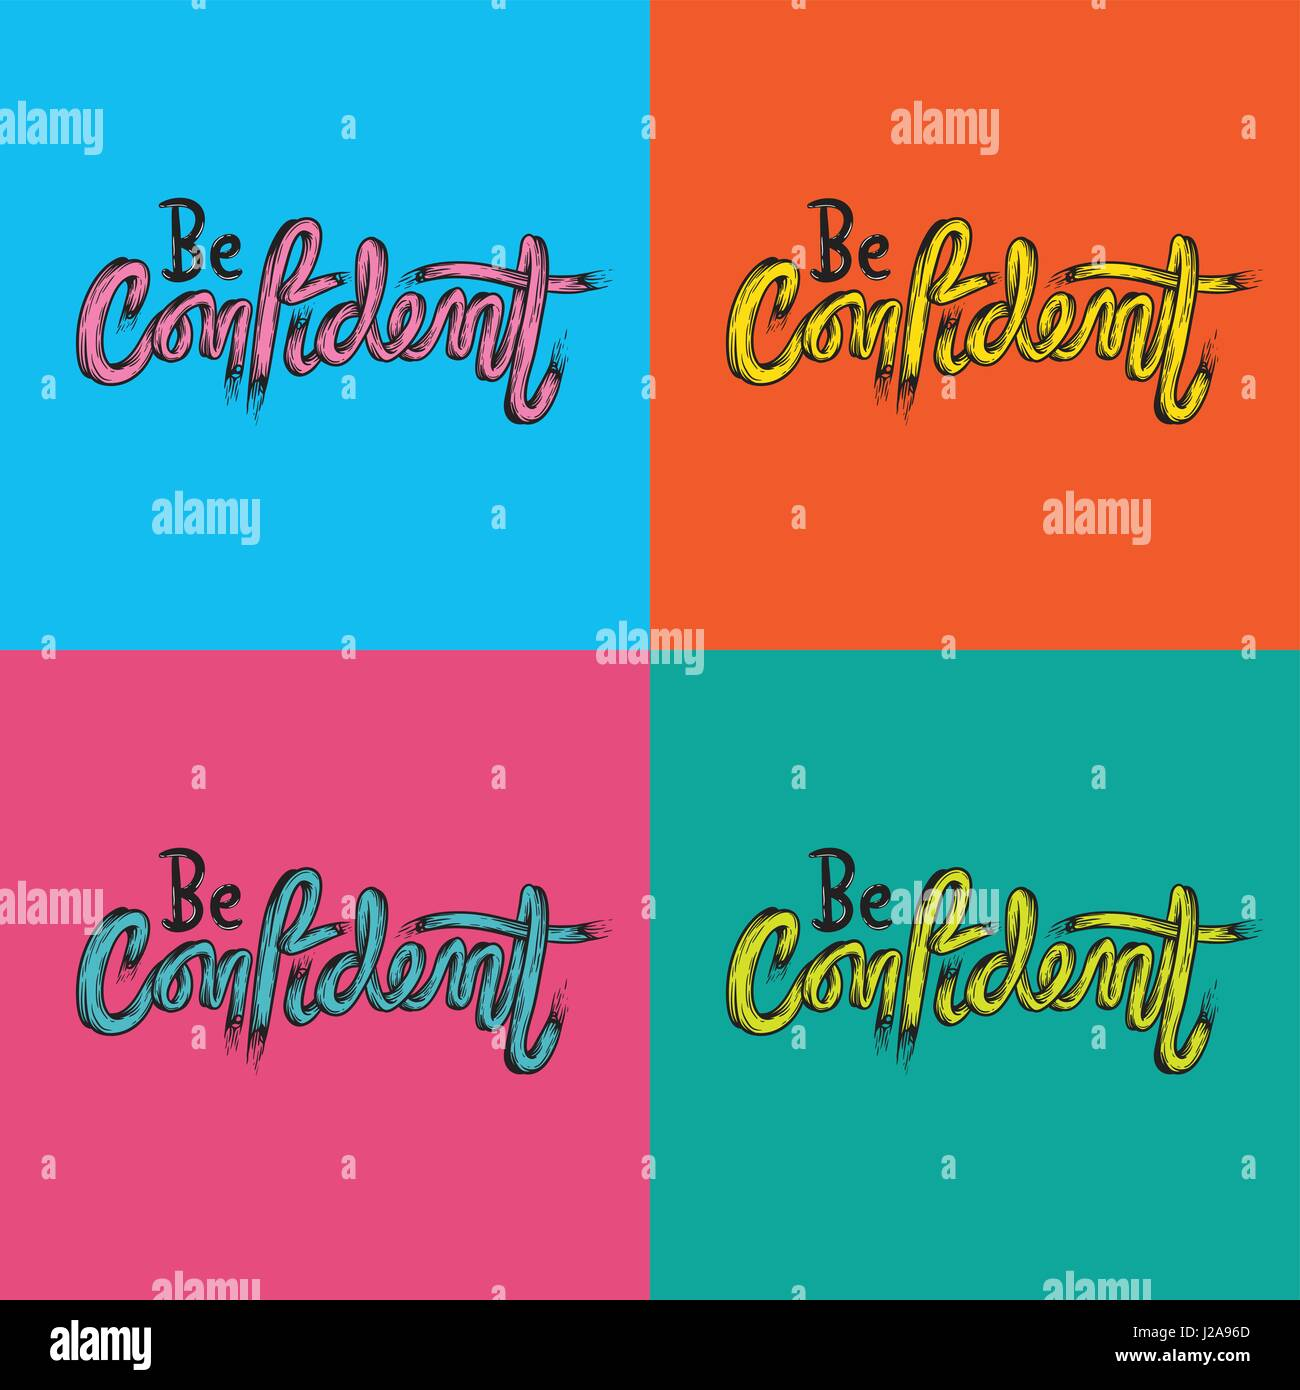 Confident Stock Vector Images - Alamy